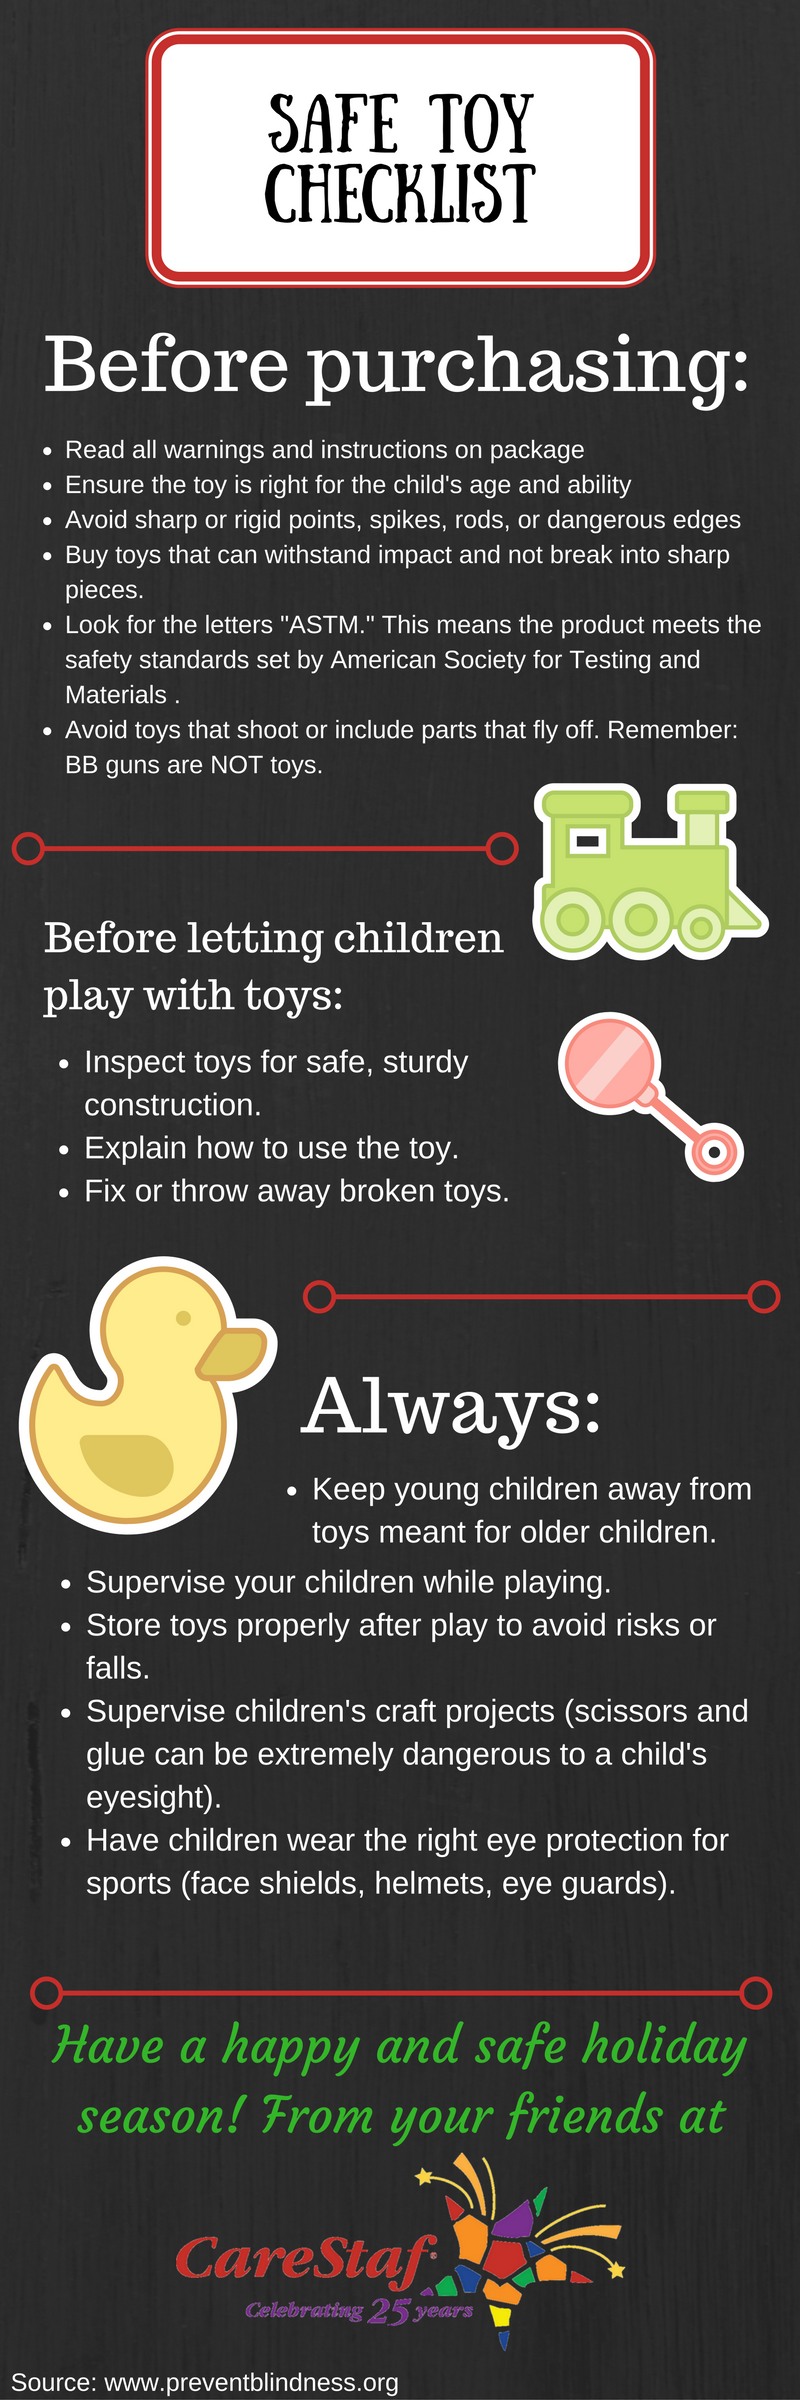 Safe Toy Checklist